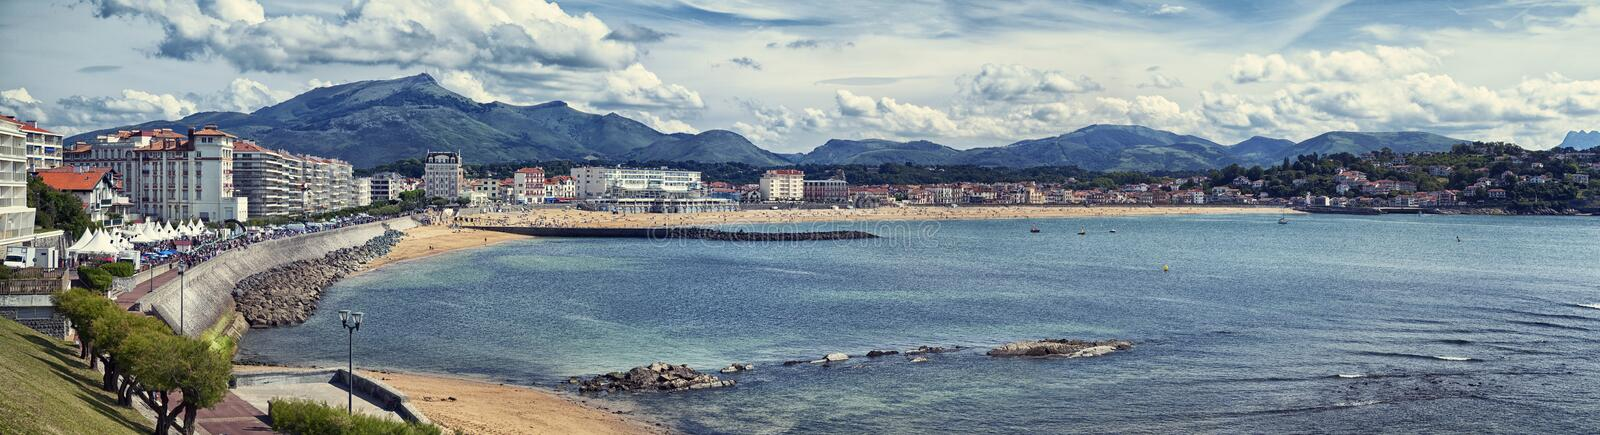 Download Panoramic View Of Saint Jean De Luz, France Stock Photo - Image: 38691224